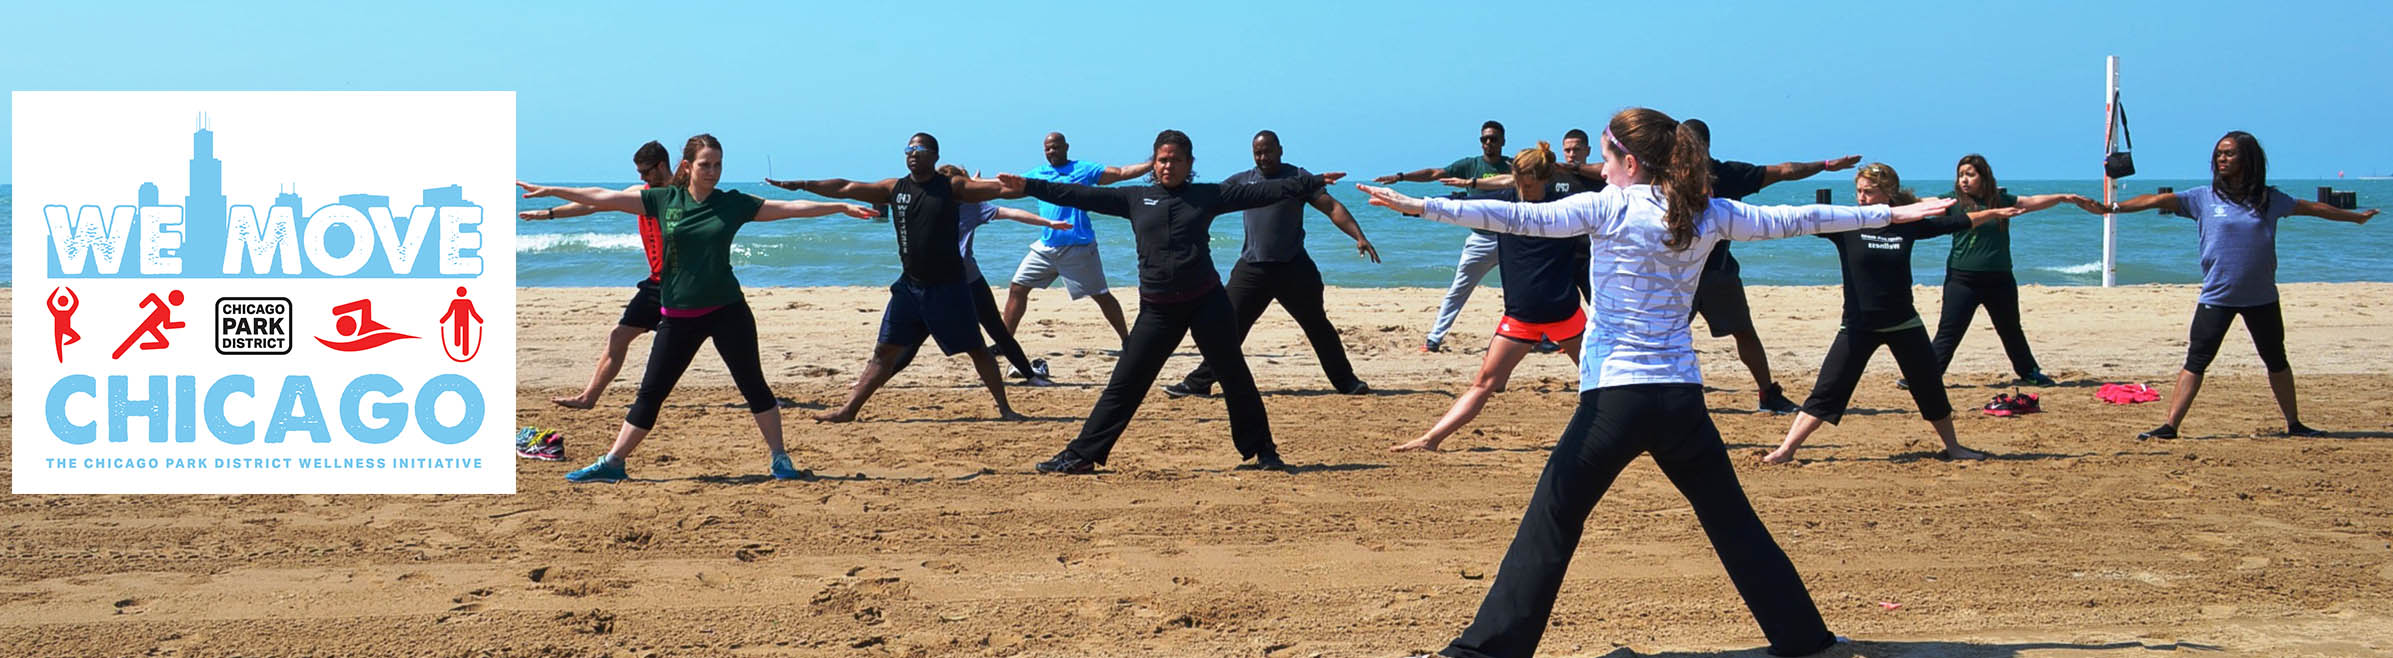 A group works out at the beach on a sunny day in a fitness class that is part of the We Move Chicago initiative.